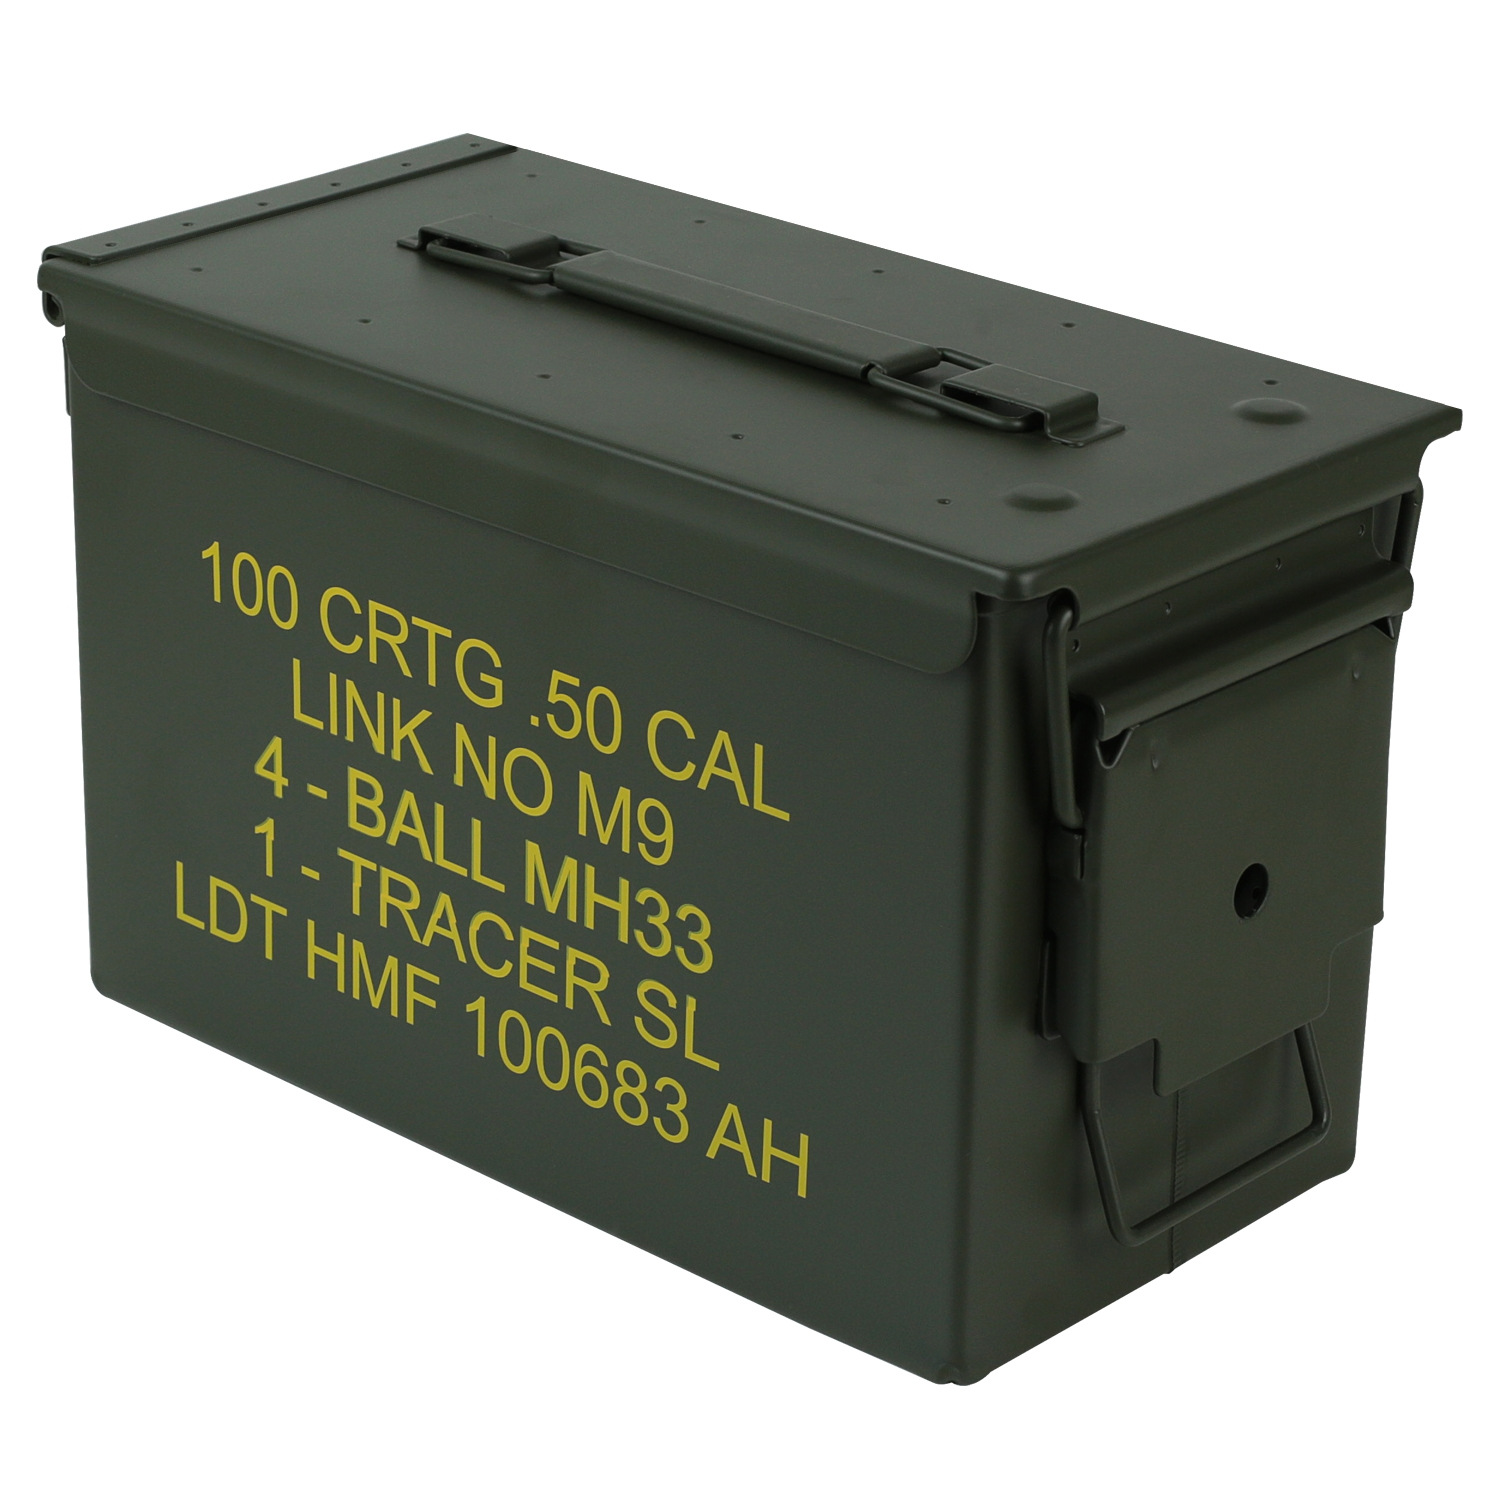 HMF-Munitionskiste-US-Ammo-Box-Metallkiste-Metallbox-Transportbox-Werkzeugkoffer Indexbild 13